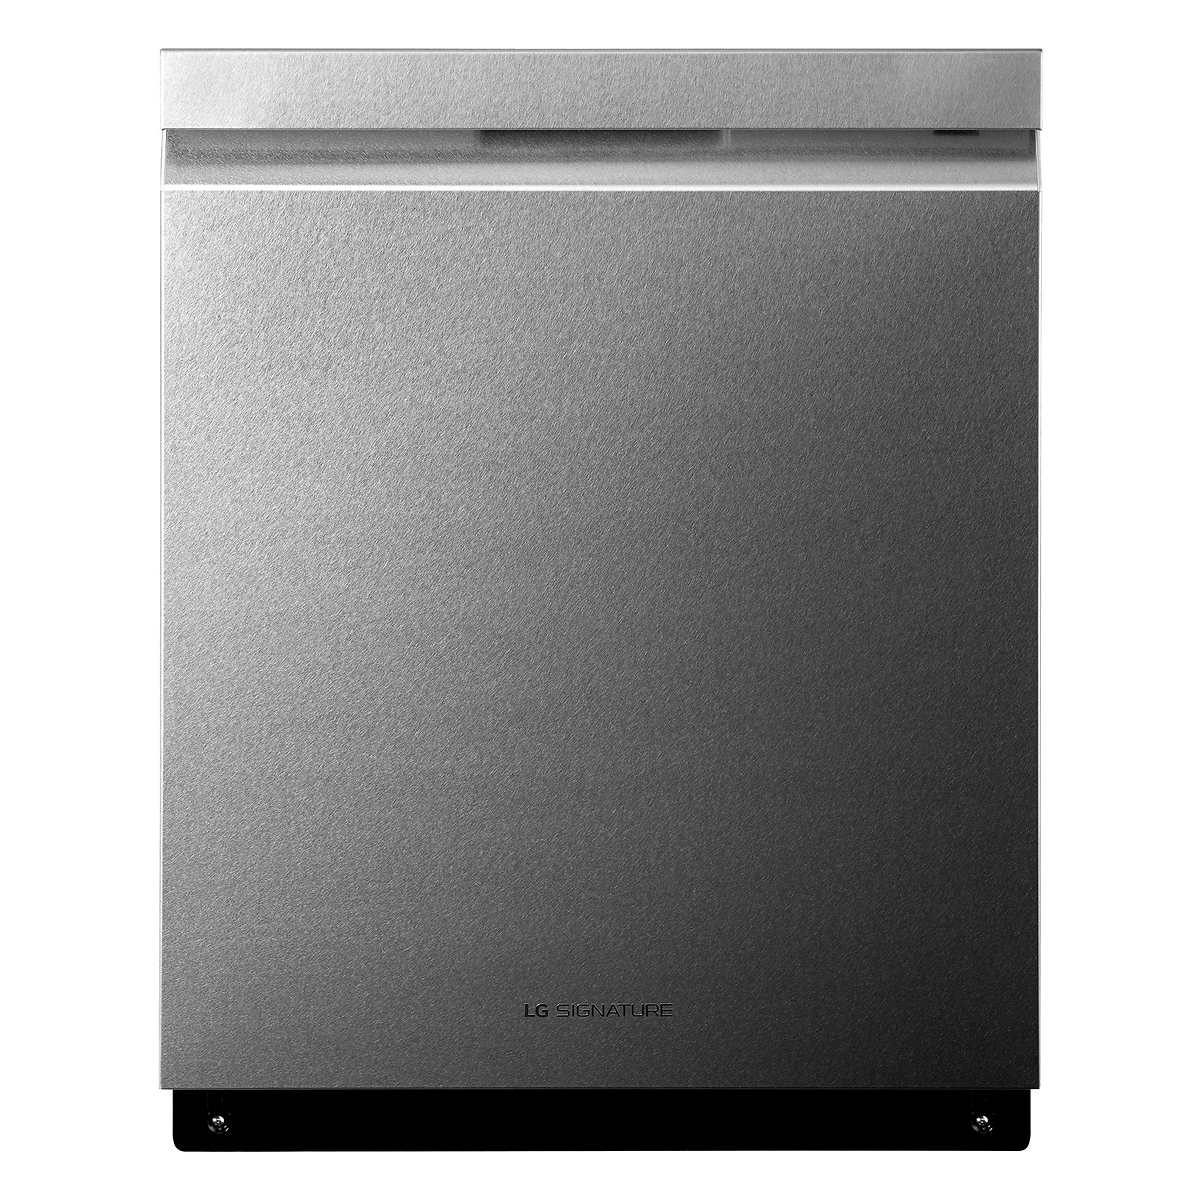 Whirlpool white ice costco - Lg Signature 24 Inch Fully Integrated Dishwasher With Quadwash In Textured Steel